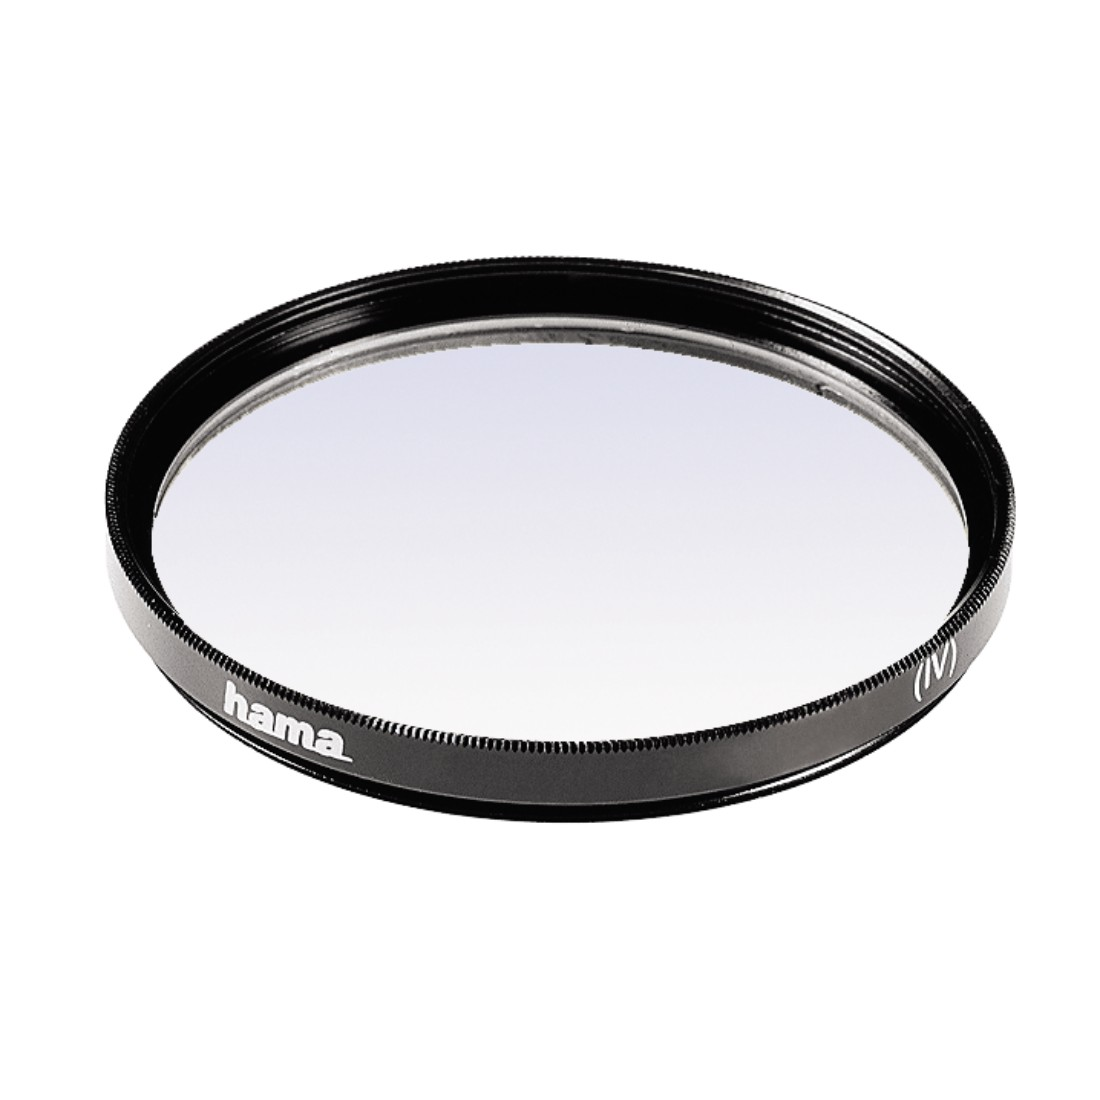 abx High-Res Image - Hama, UV Filter, coated, 62.0 mm